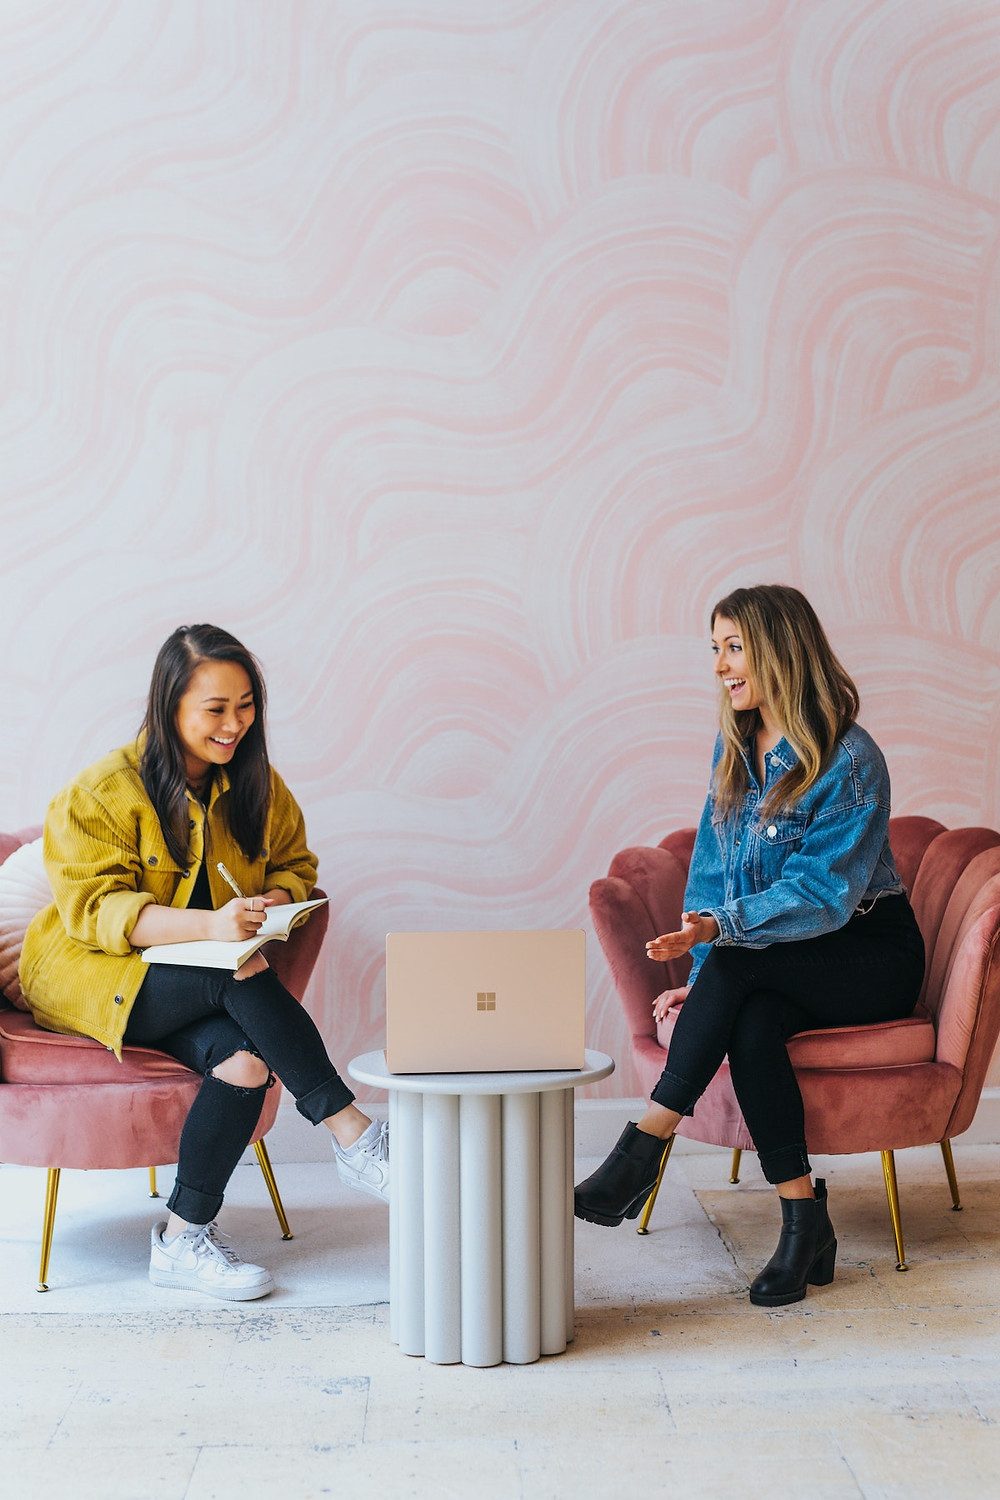 Two people sit in pink chairs with a pedestal holding a laptop between them. They're smiling and laughing.